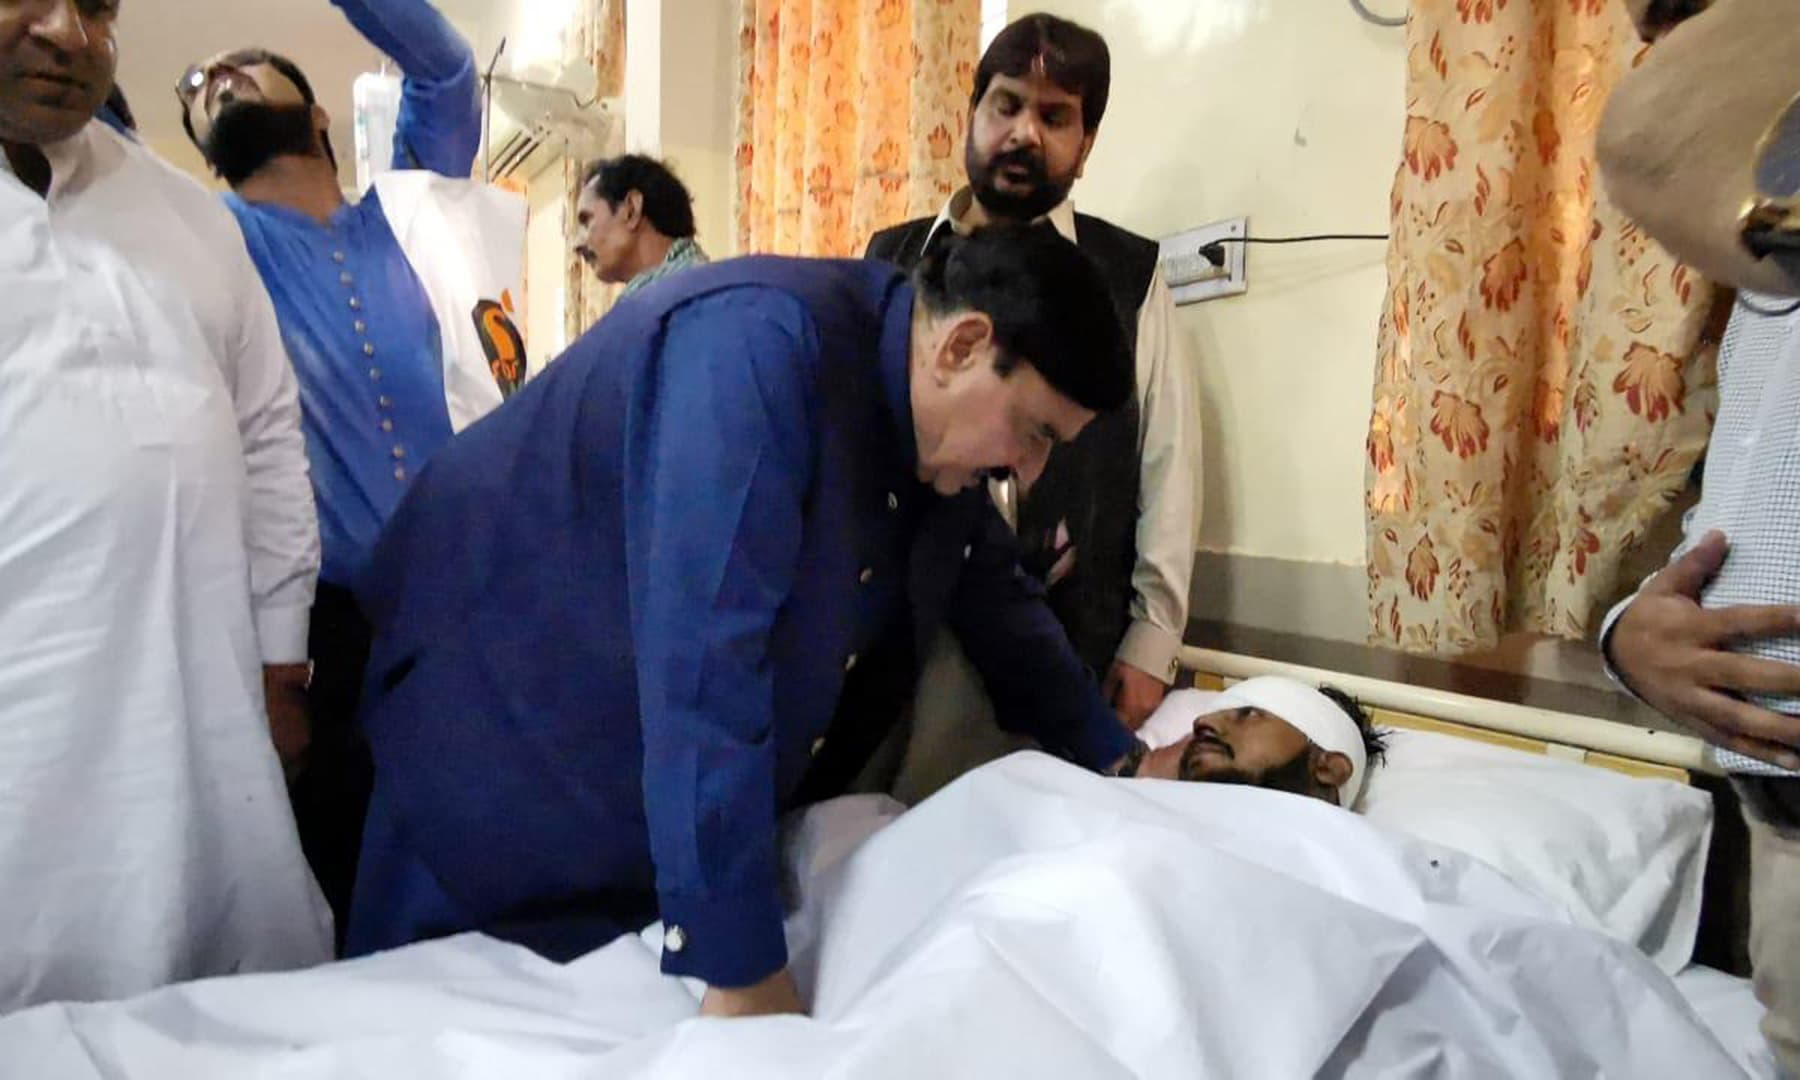 Railways Minister Sheikh Rashid Ahmed asking after a patient at the Sheikh Zayed Hospital in Rahim Yar Khan on Thursday. — Photo provided by Adnan Sheikh